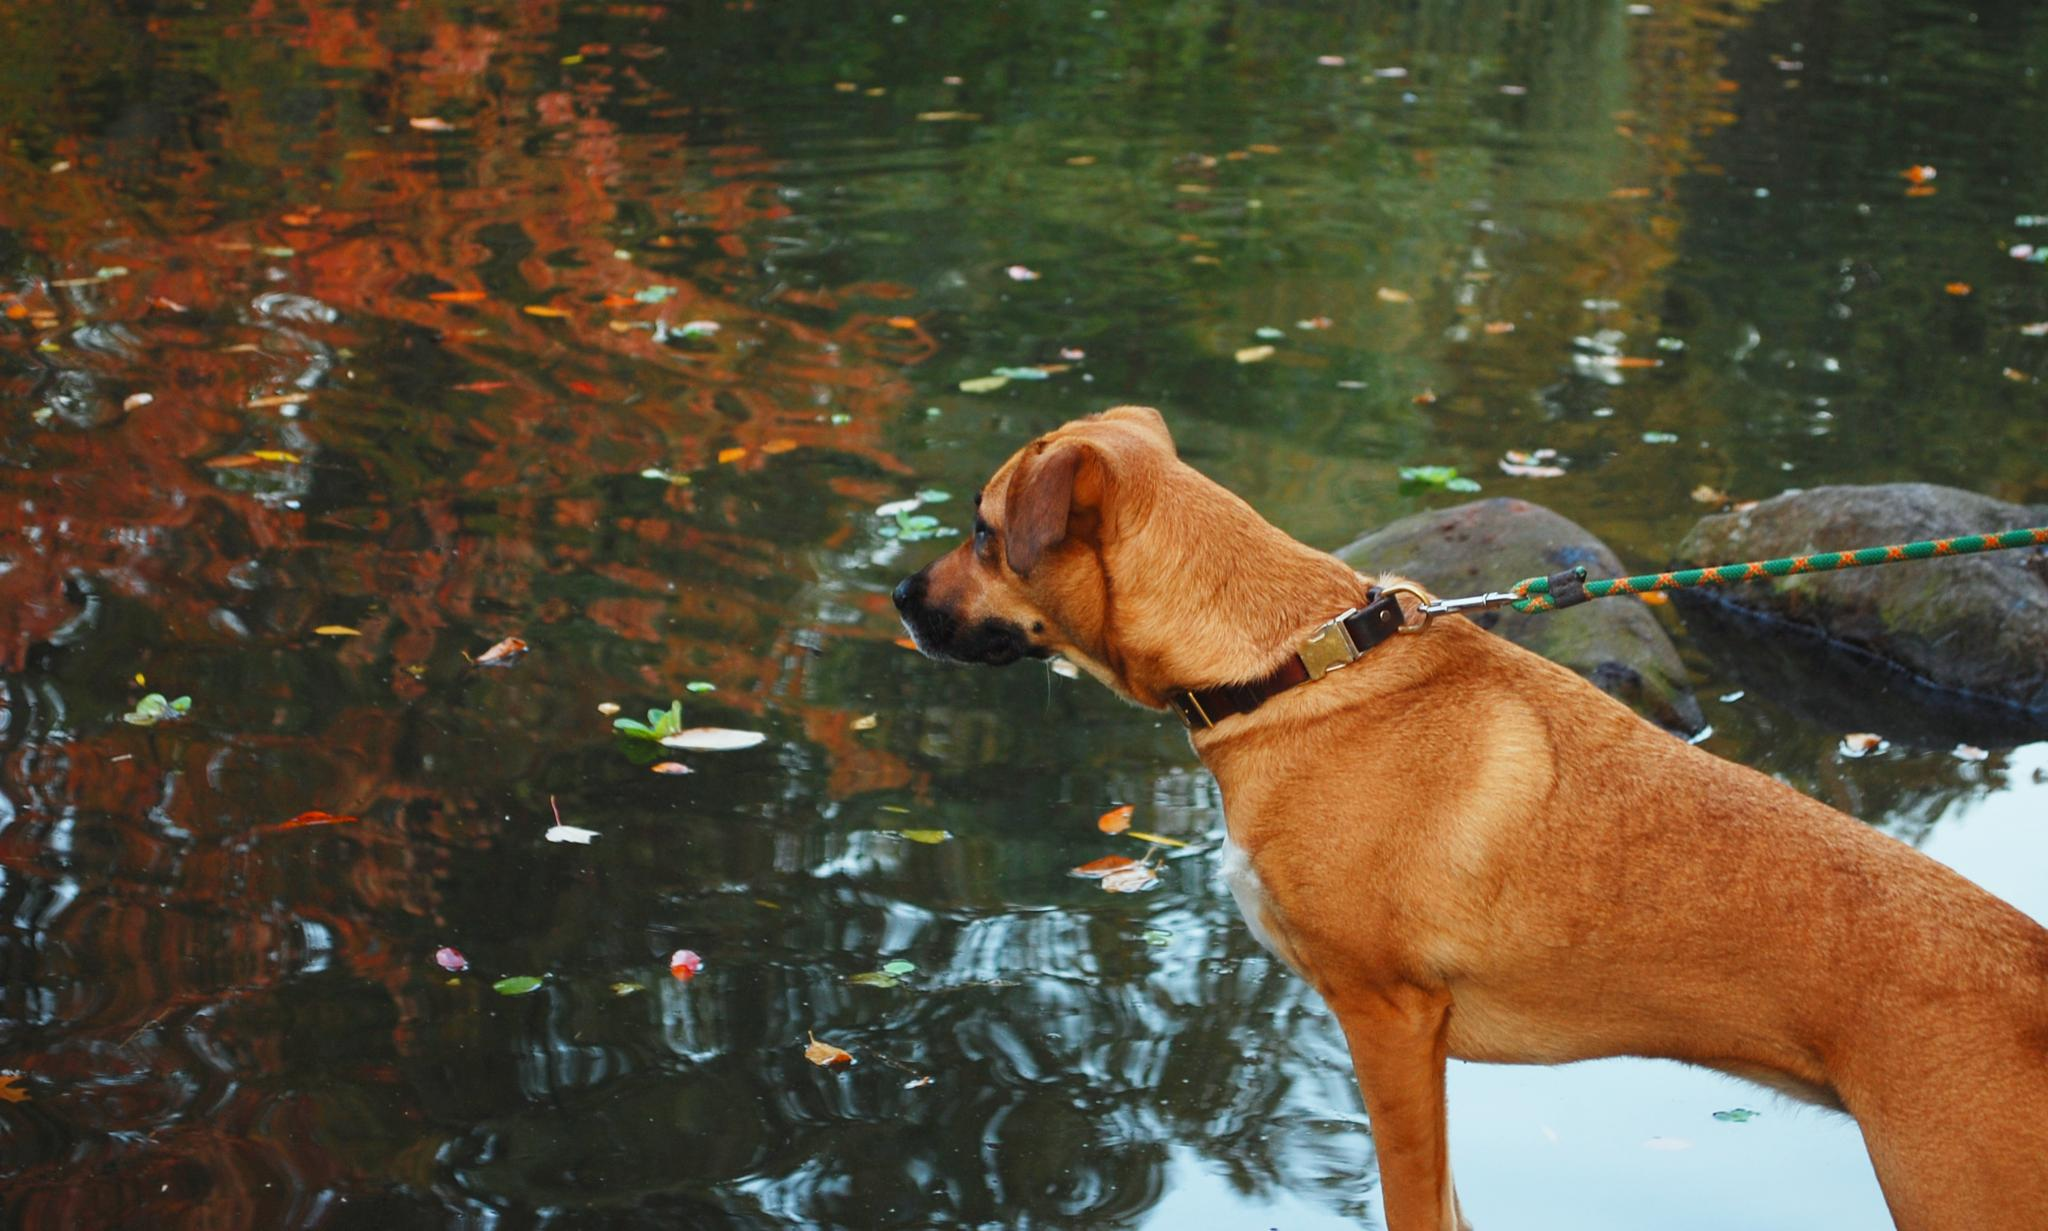 I can see fish. by Yoko D